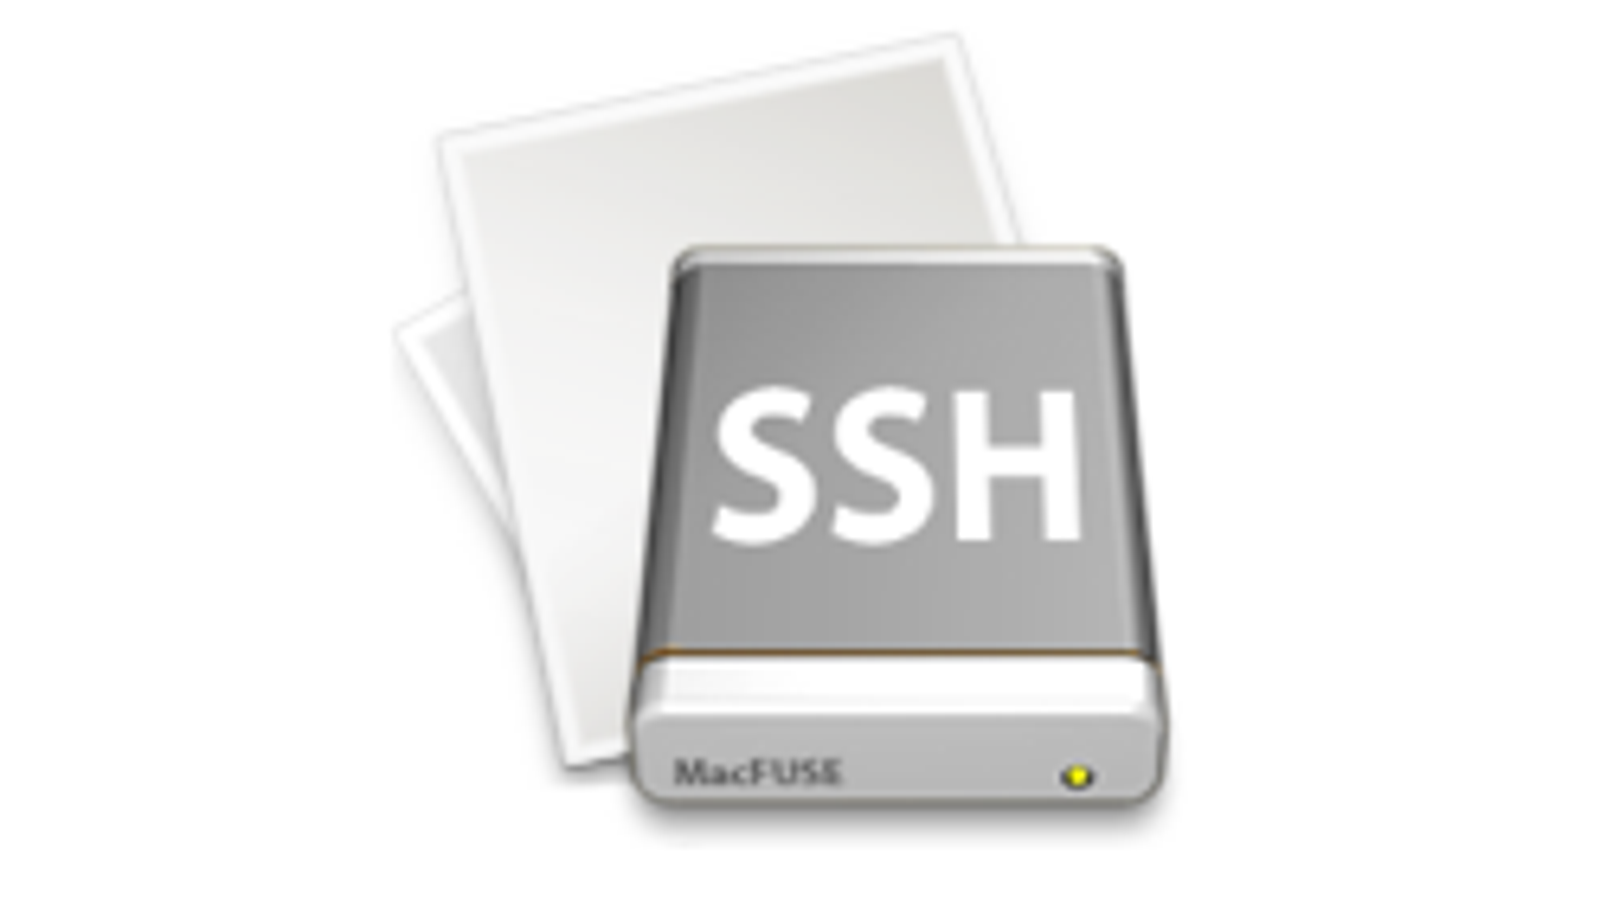 Geek to Live: Mount a file system on your Mac over SSH